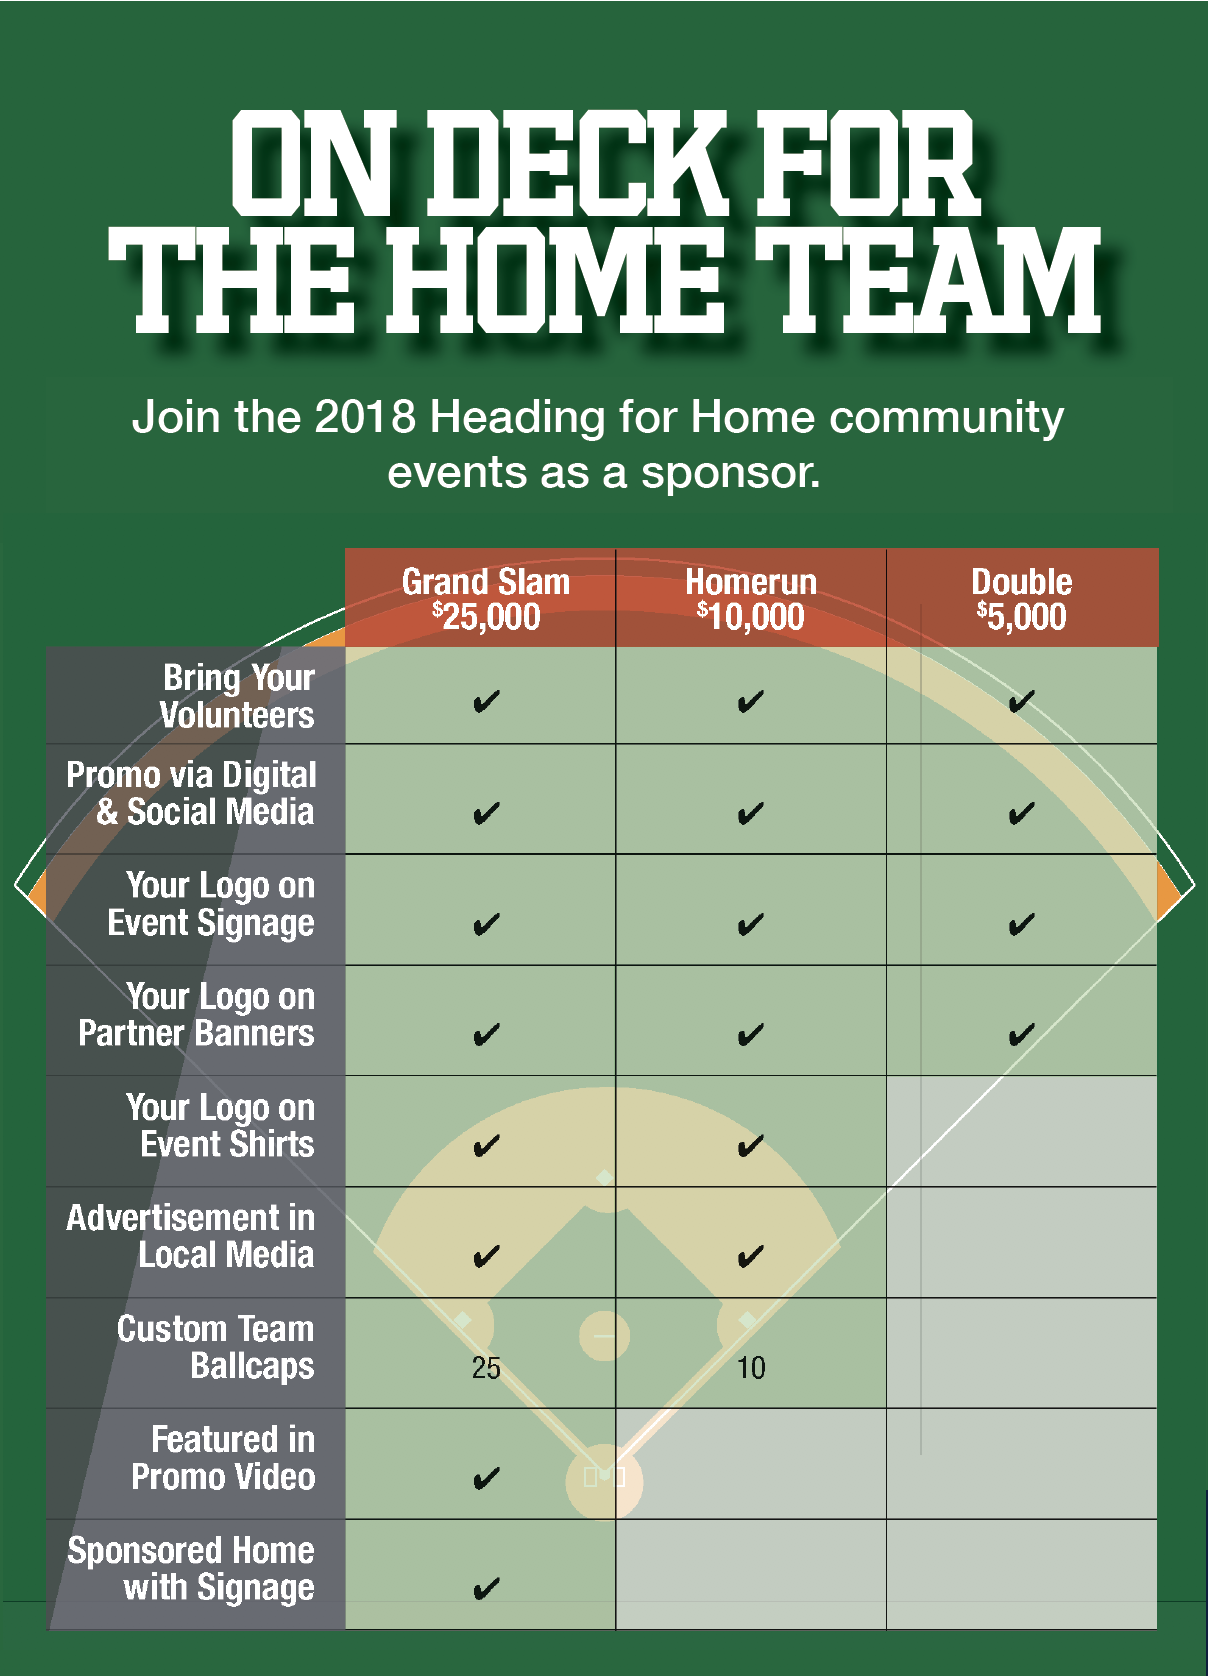 All sponsorships benefit Rebuilding Together Houston home repair programs.